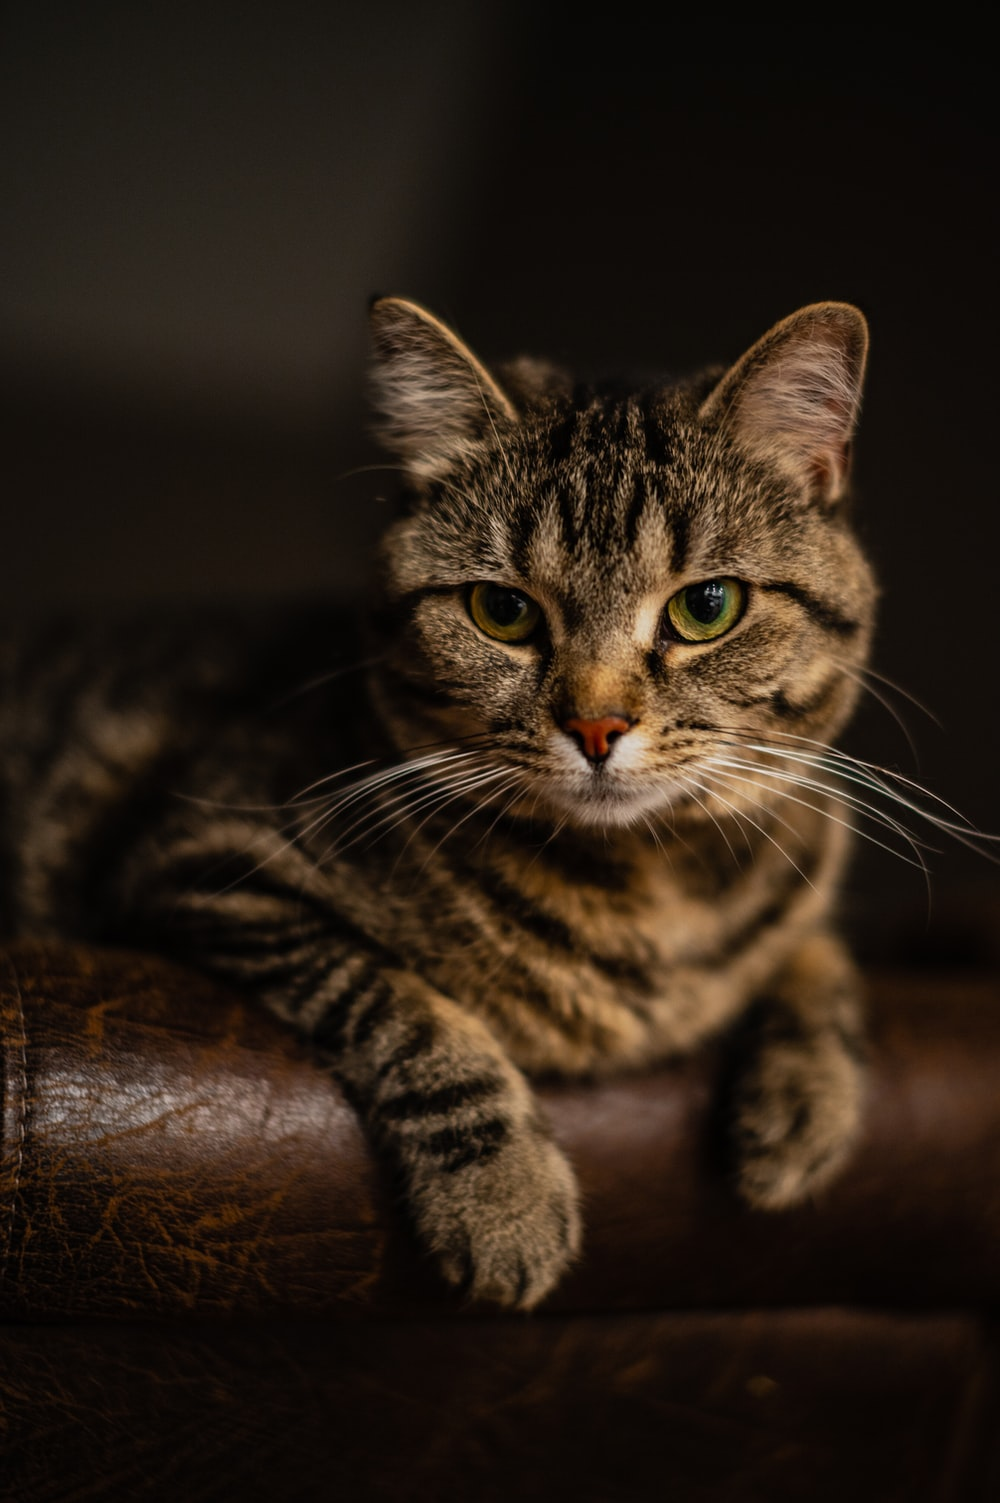 brown tabby cat on brown leather couch